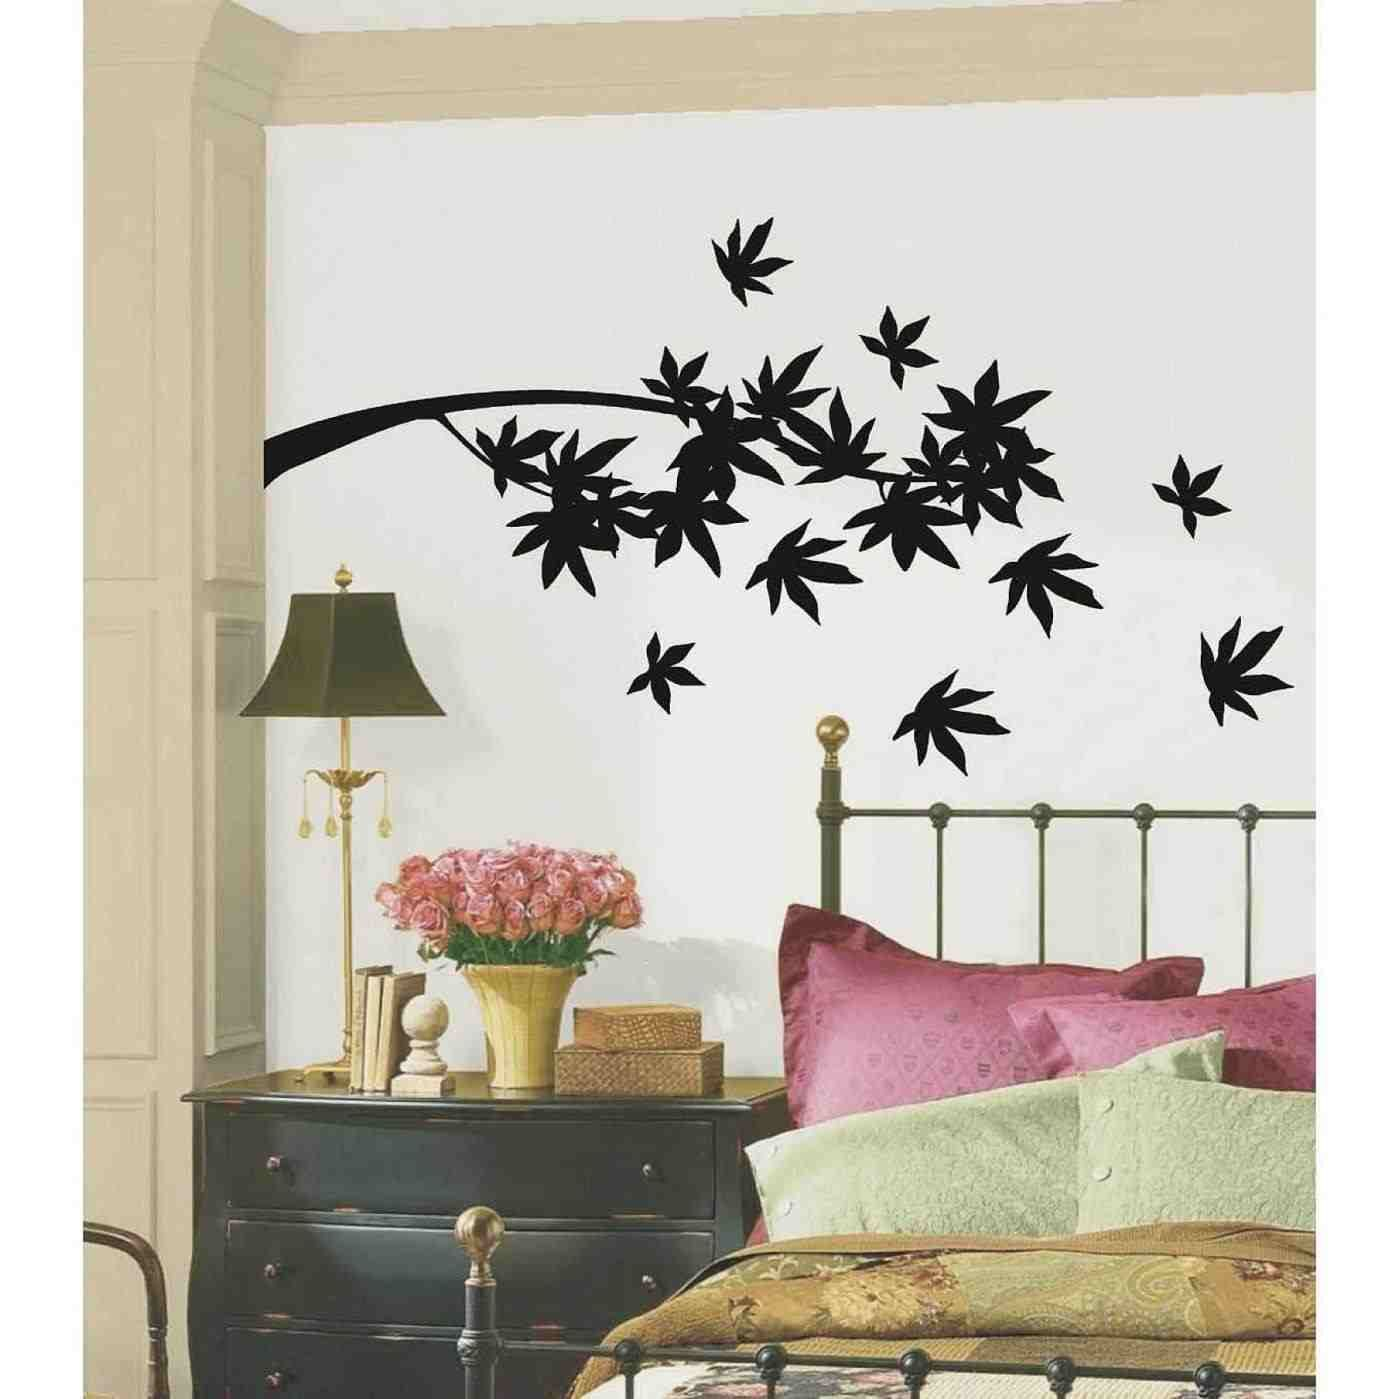 Creative Wall Painting Ideas Creative Painting Wall Amazing Diy Wall Art Painting Ideas Wellb Simple Wall Decor Wall Stickers Living Room Wall Decor Bedroom